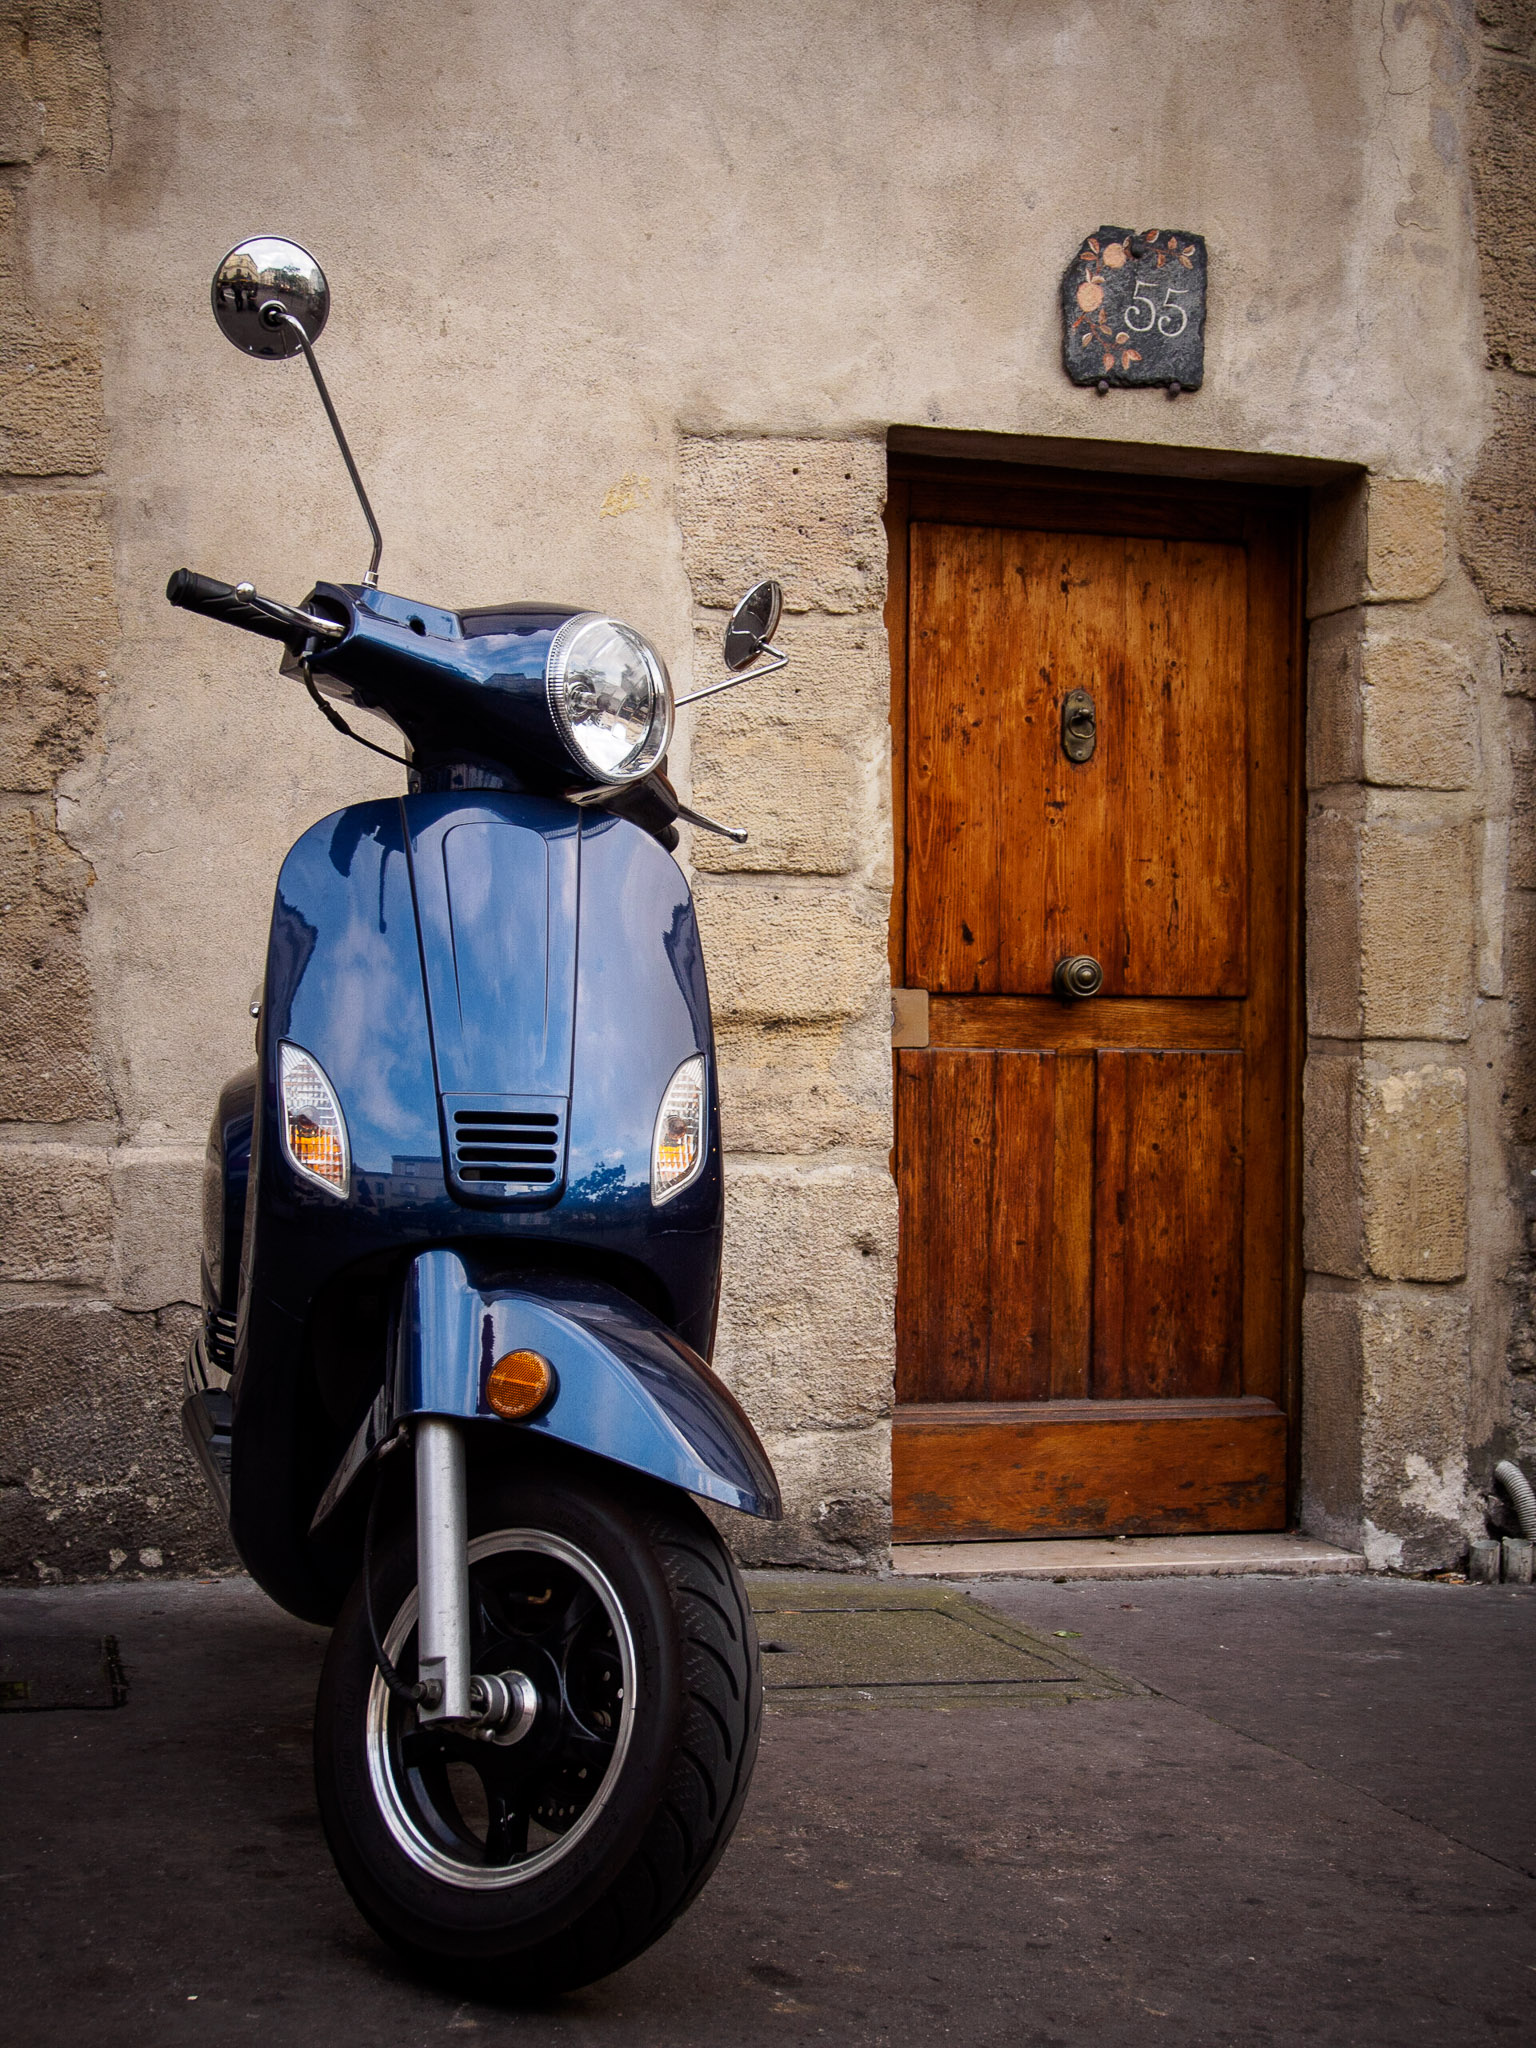 Blue scooter in front of an old wooden door in Paris, France Olympus OMD E-M5, 1/80 sec, ƒ6.3, 25mm (50mm full-frame equivalent), ISO320